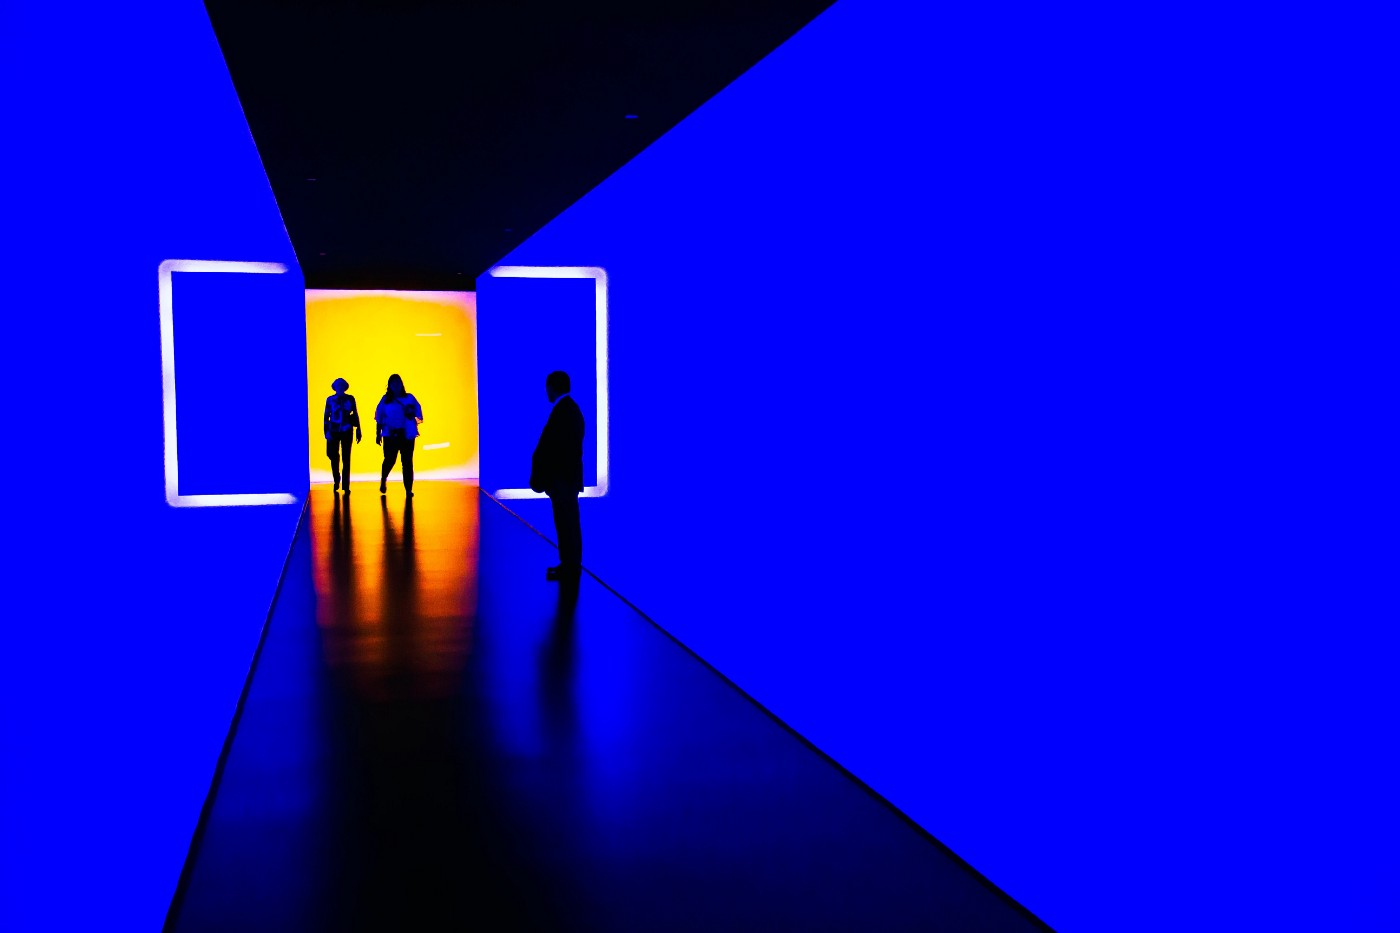 A futuristic blue hallway with people standing in it.